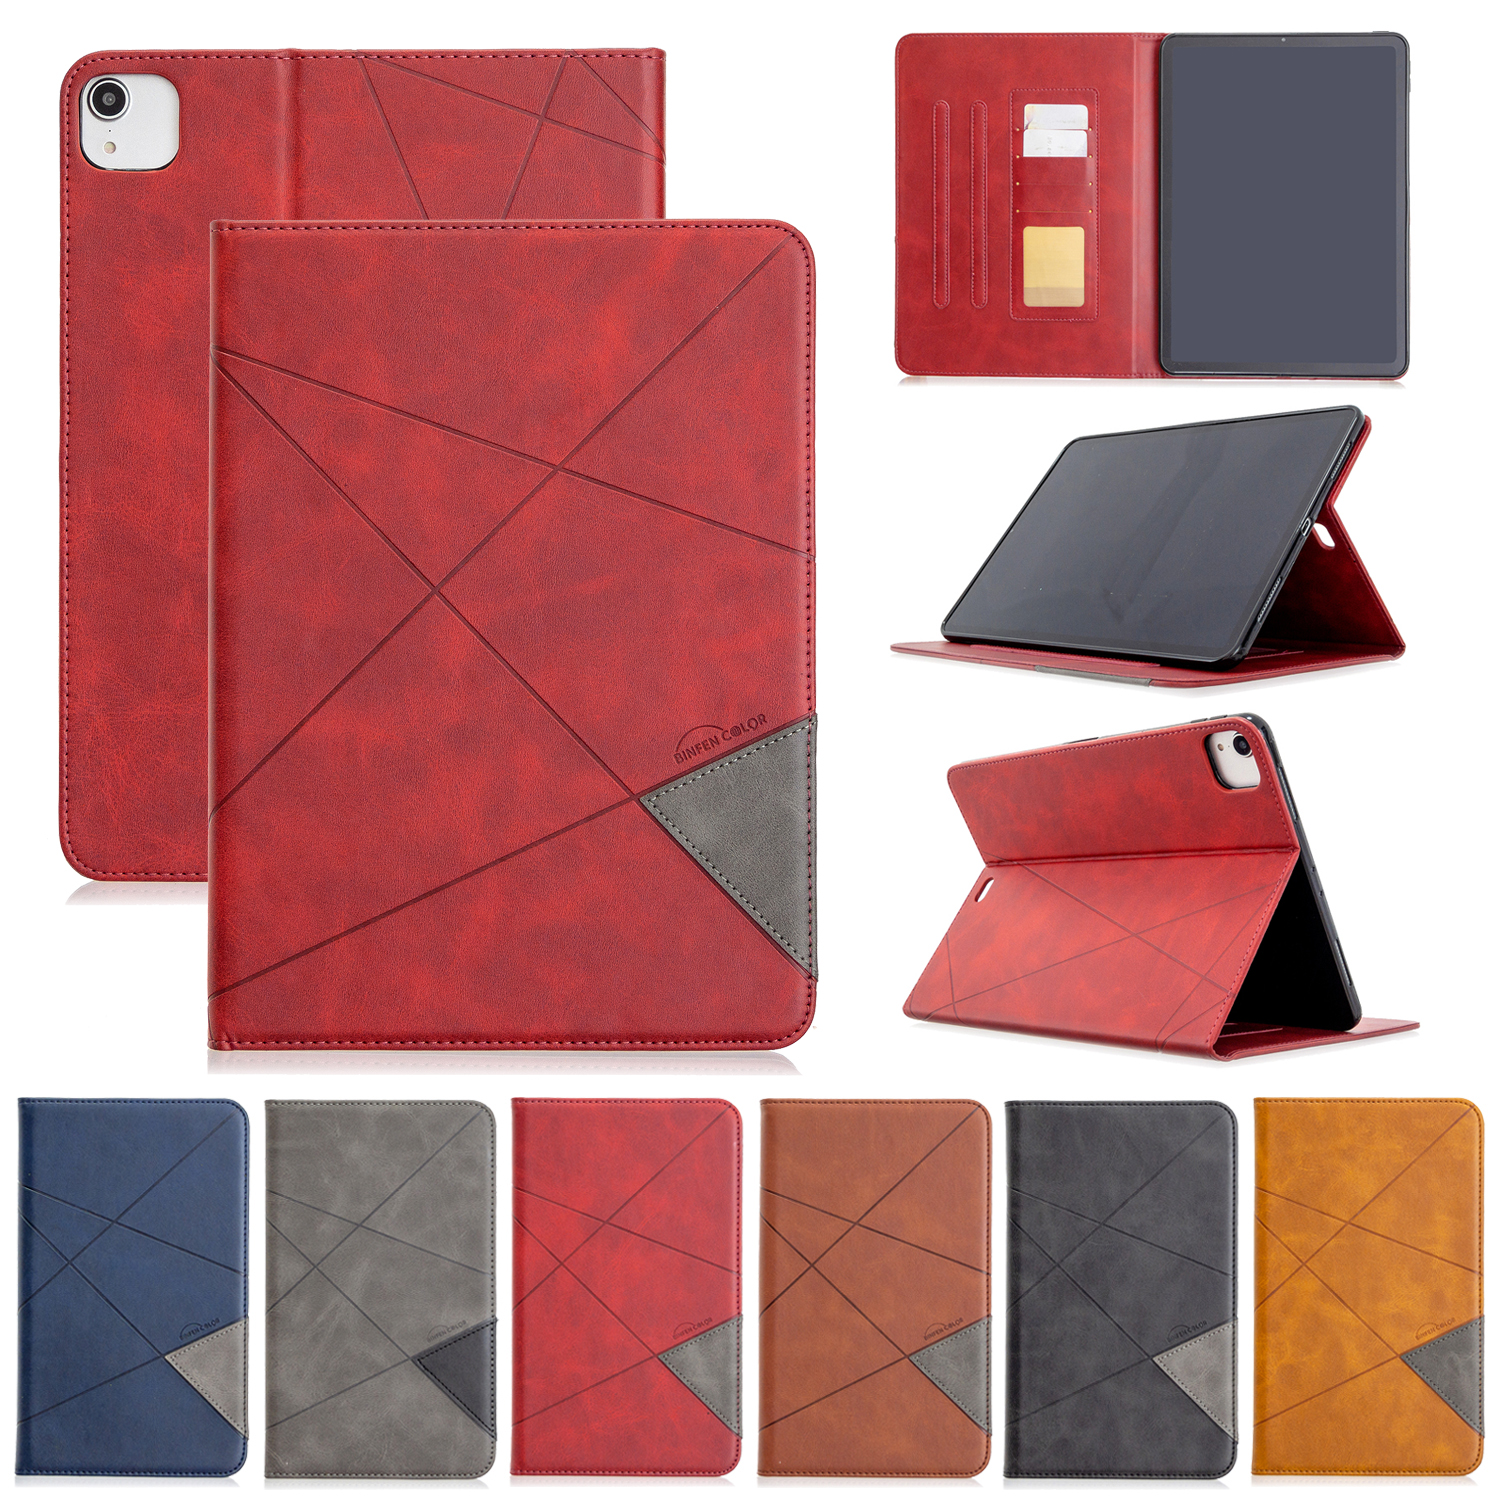 Case For iPad Pro 12 9 2020 2018 With Wallet Holder PU Leather Cover Silicone Soft